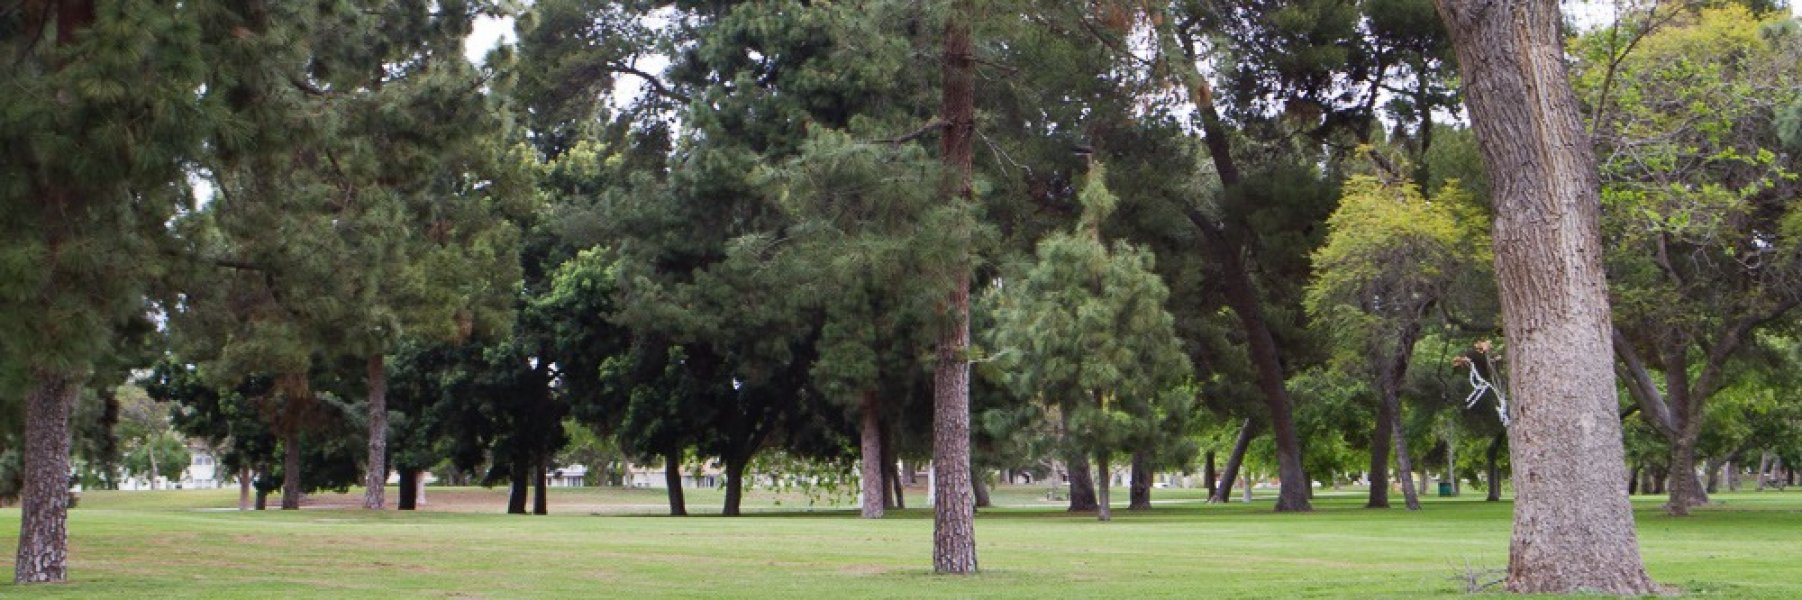 Lakewood Village is a community of homes in Long Beach California